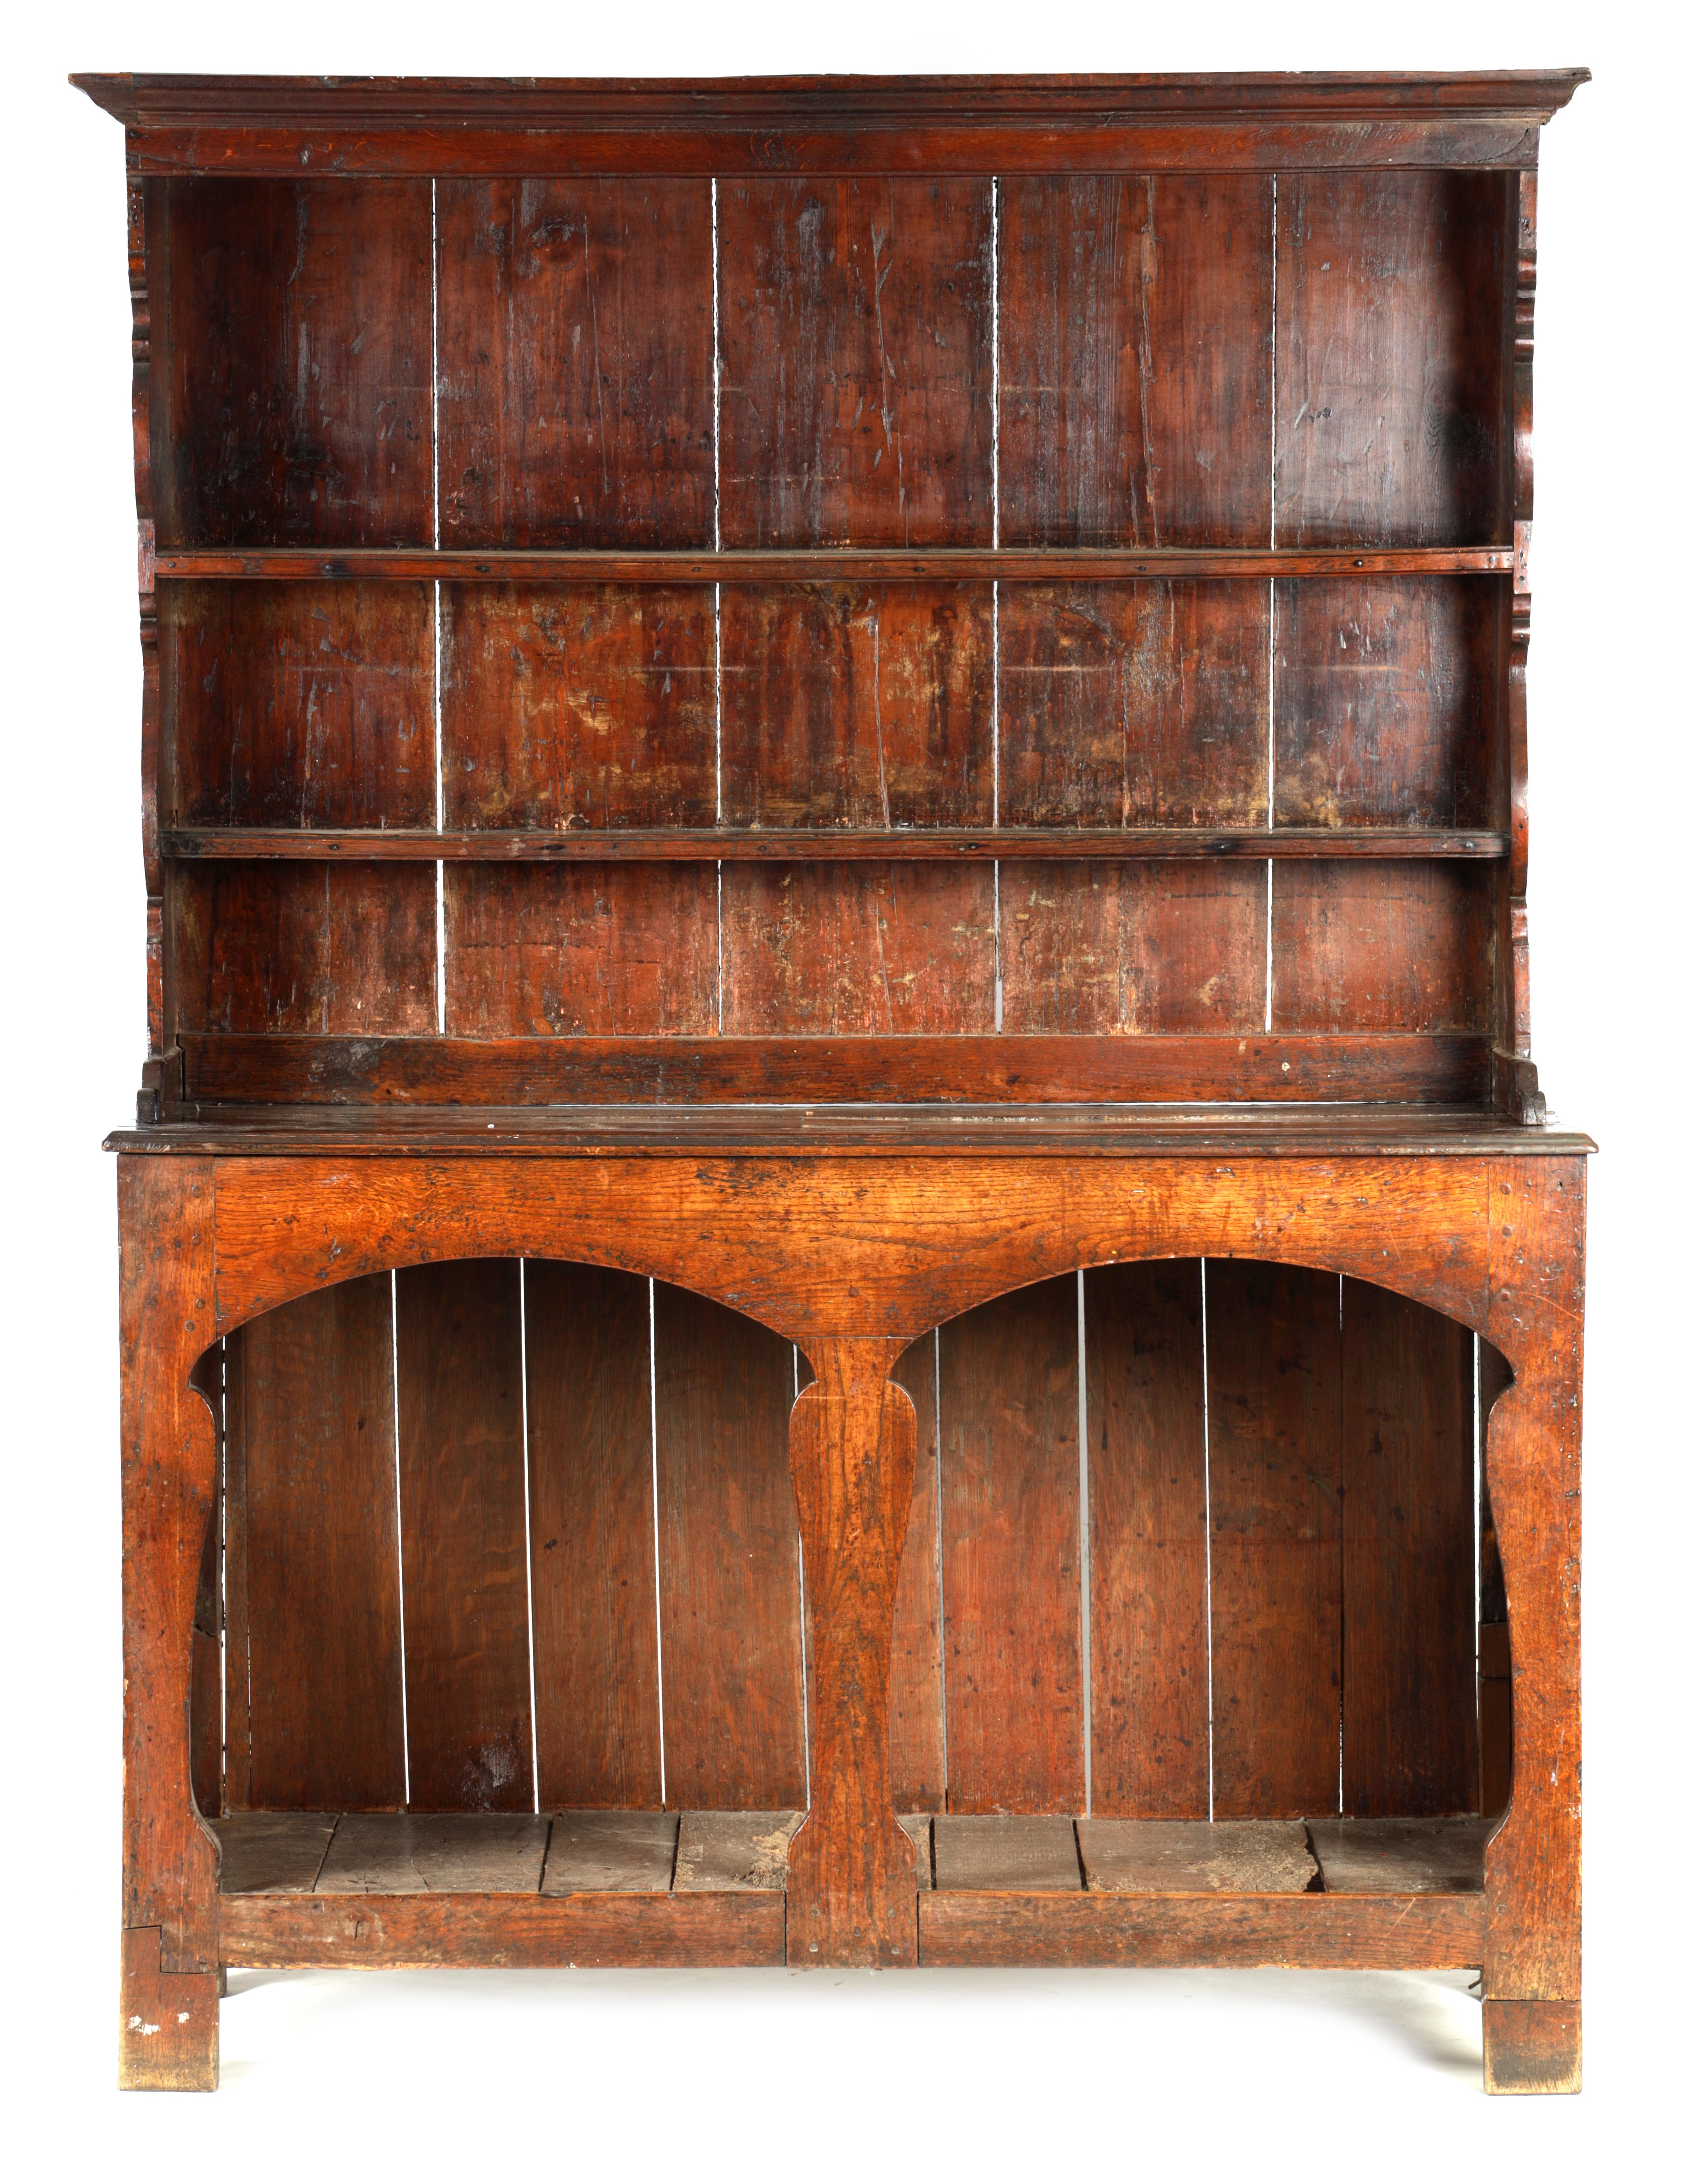 AN EARLY 18TH CENTURY SILHOUETTE LEG OAK DRESSER AND RACK with shaped moulded rack fitted two